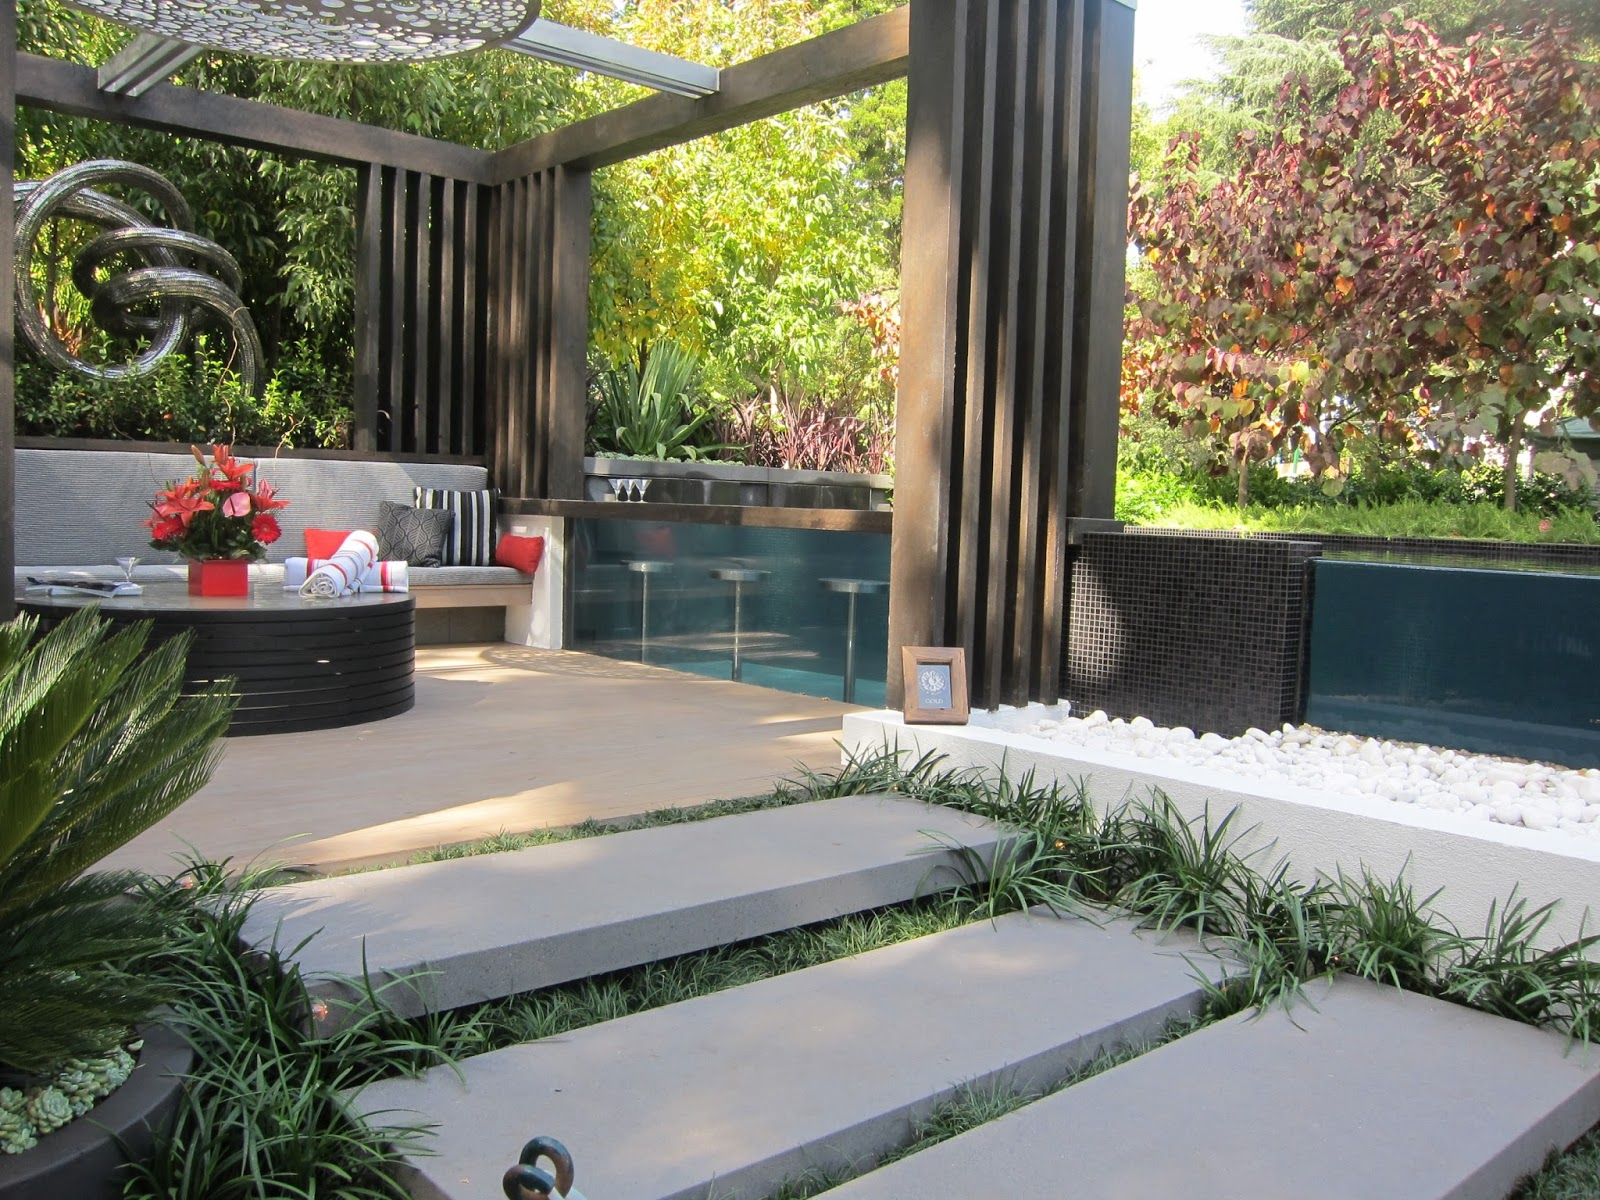 Small garden design in home home and design modern garden ideas garden small modern garden ideas workwithnaturefo